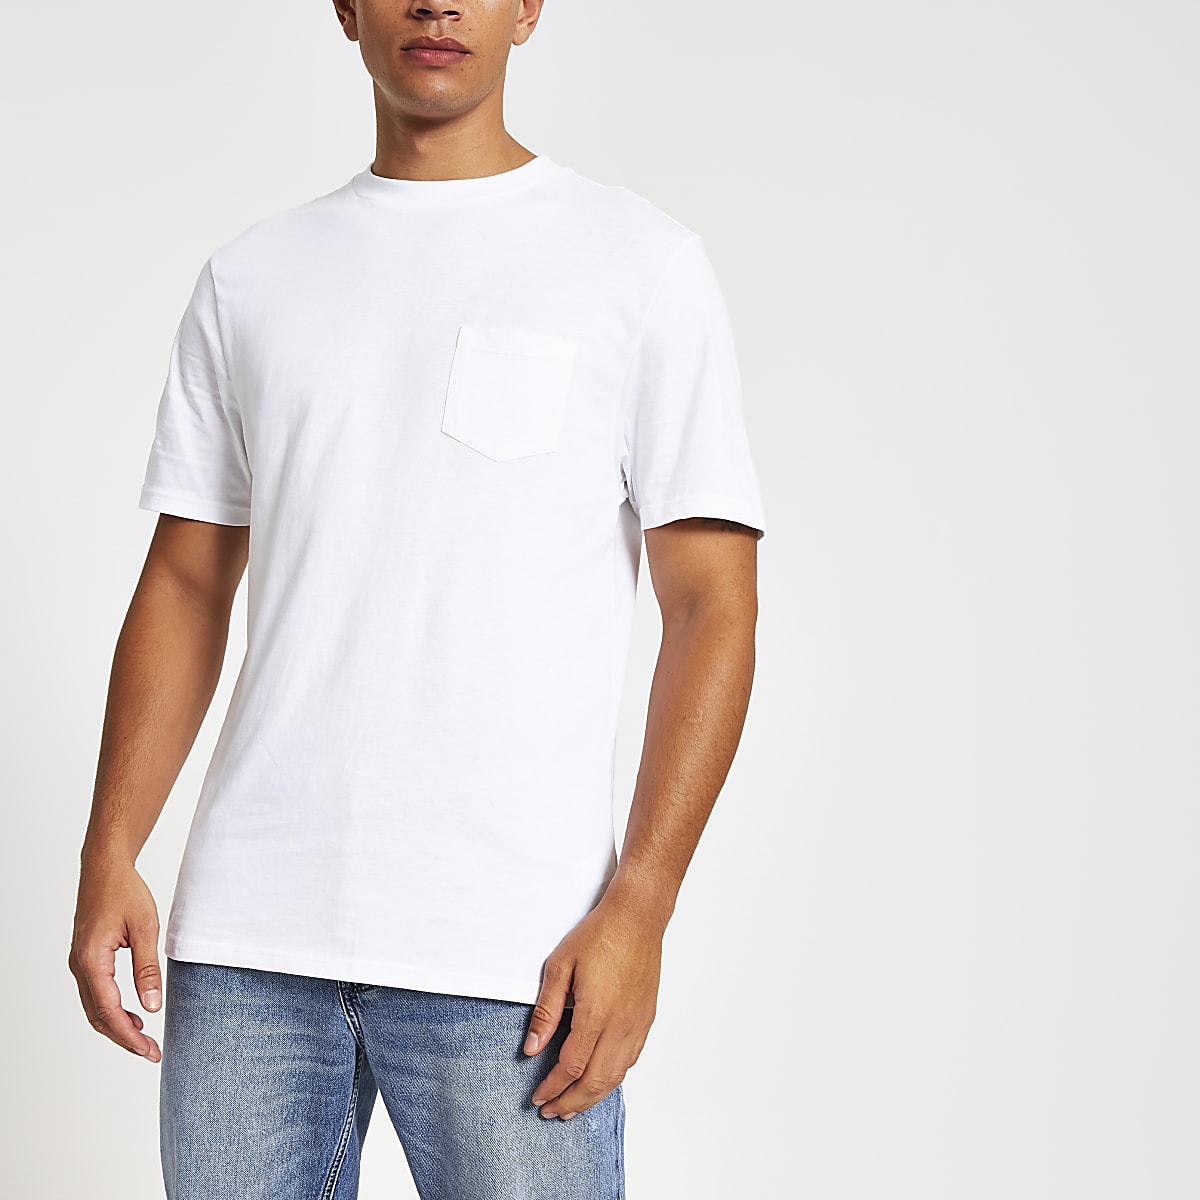 White chest pocket short sleeve T-shirt